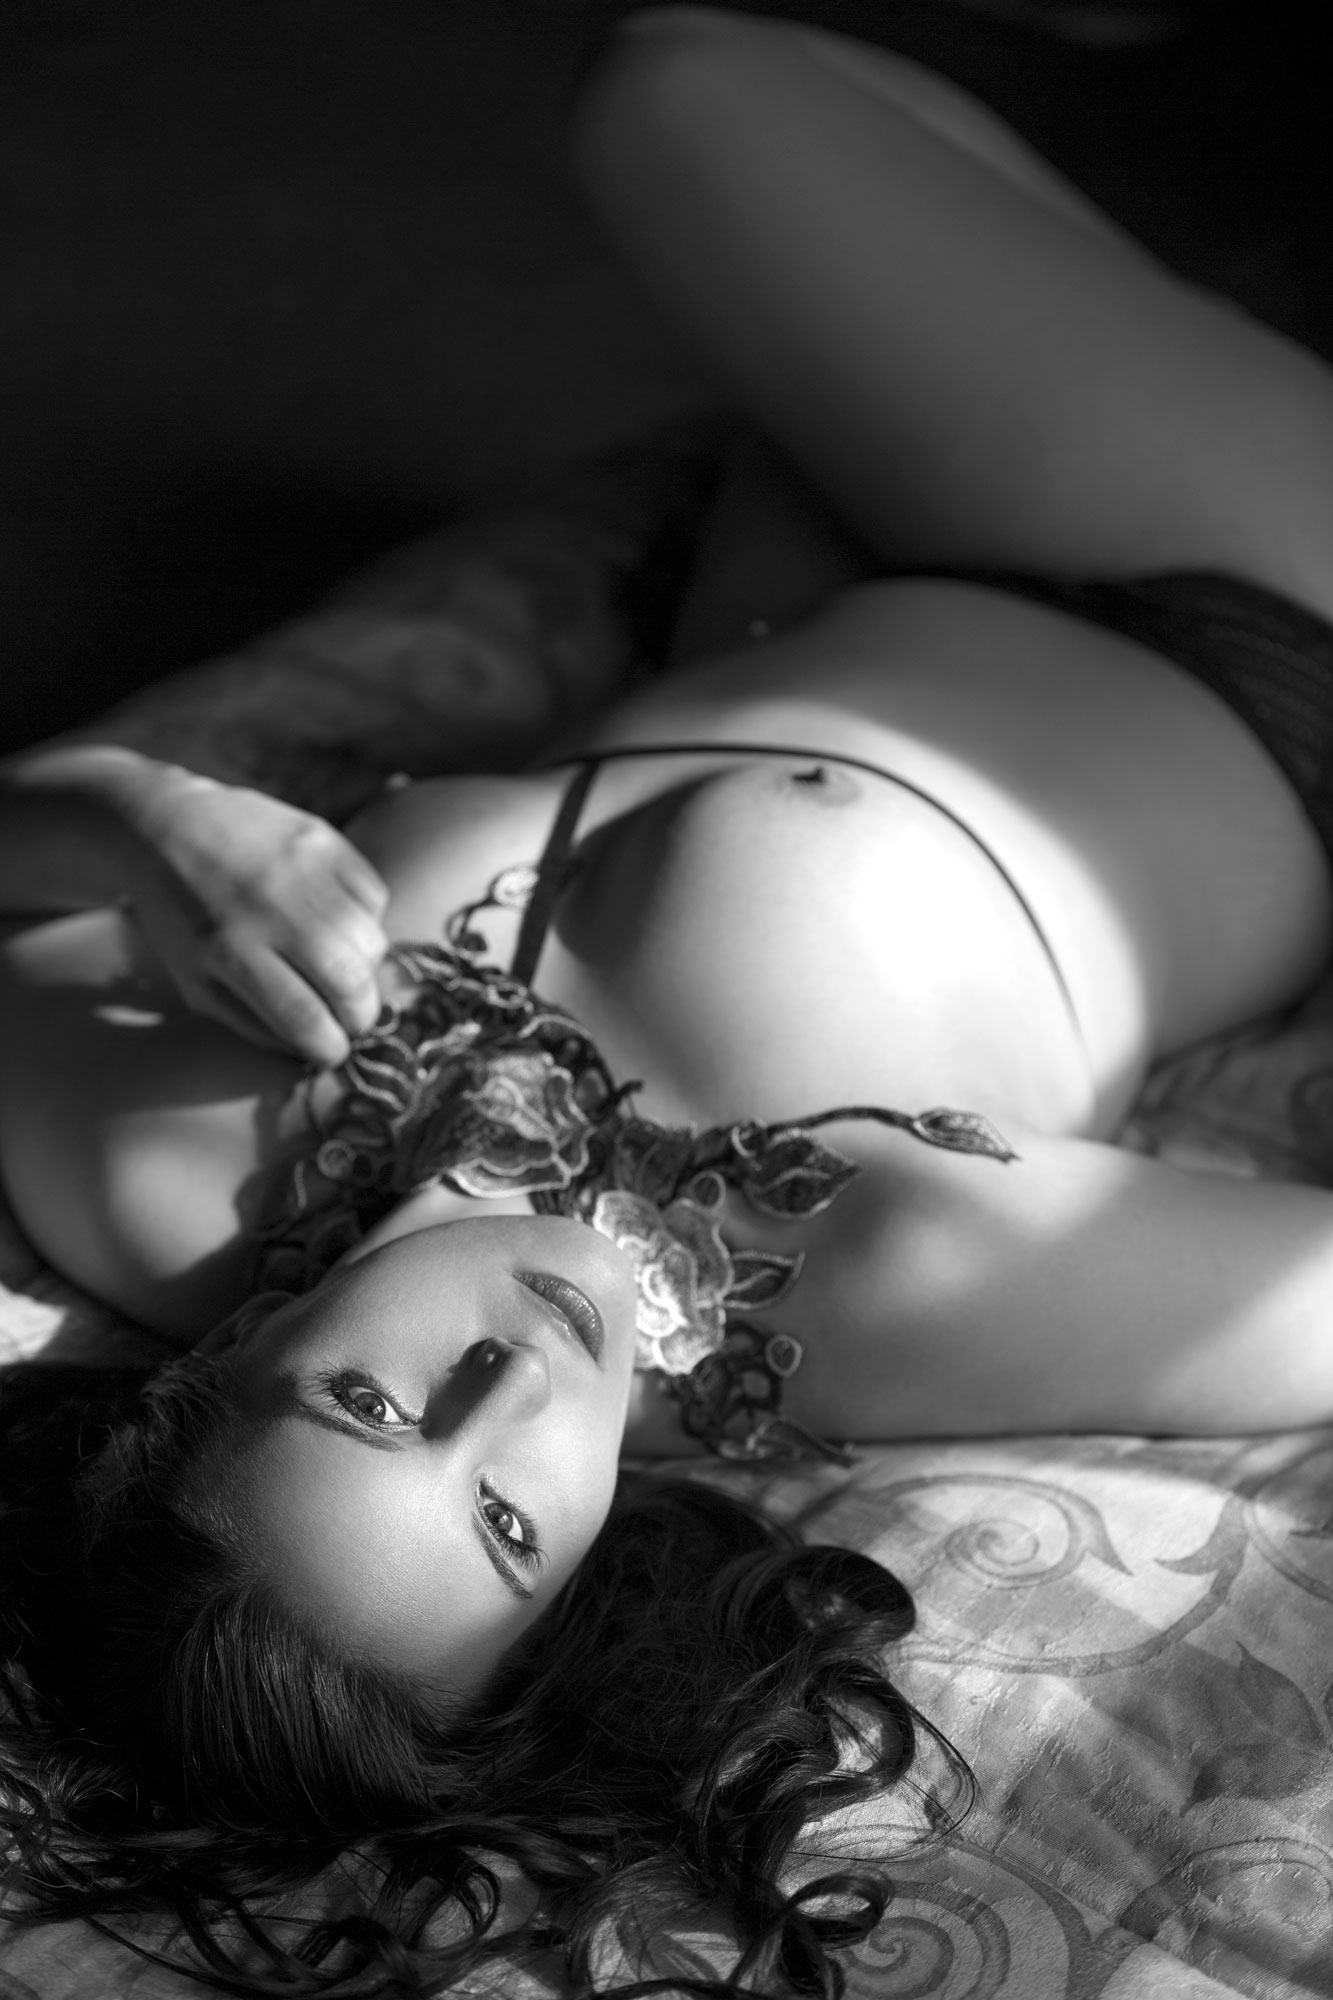 11Jason-Guy-_-Boudoir-Photographer-bw.jpg